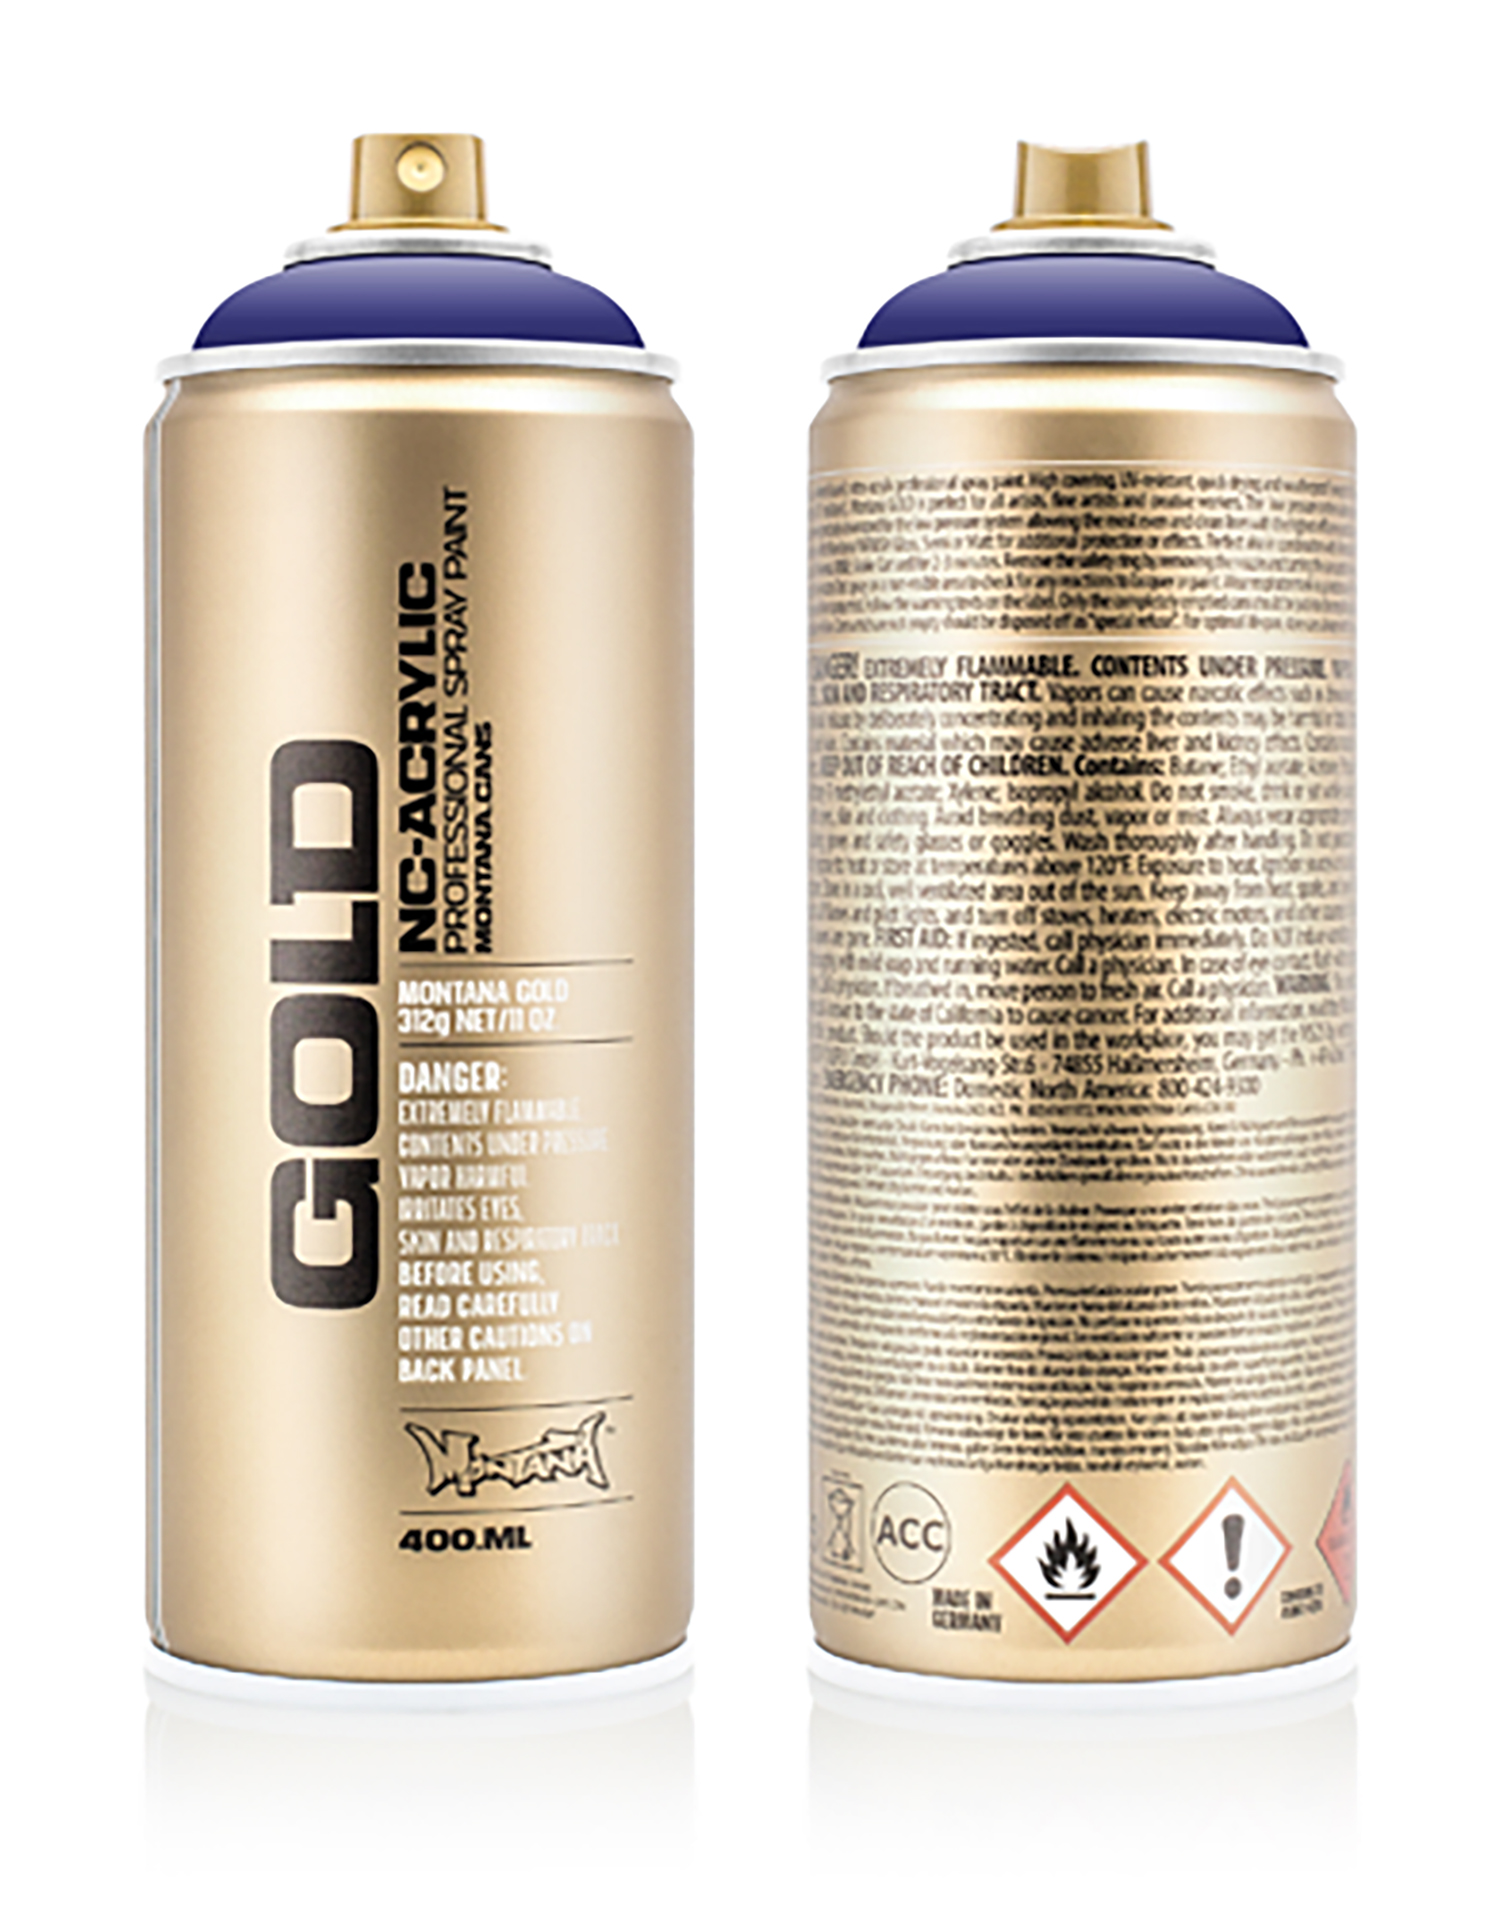 MONTANA-GOLD-SPRAY-400ML-G-4160